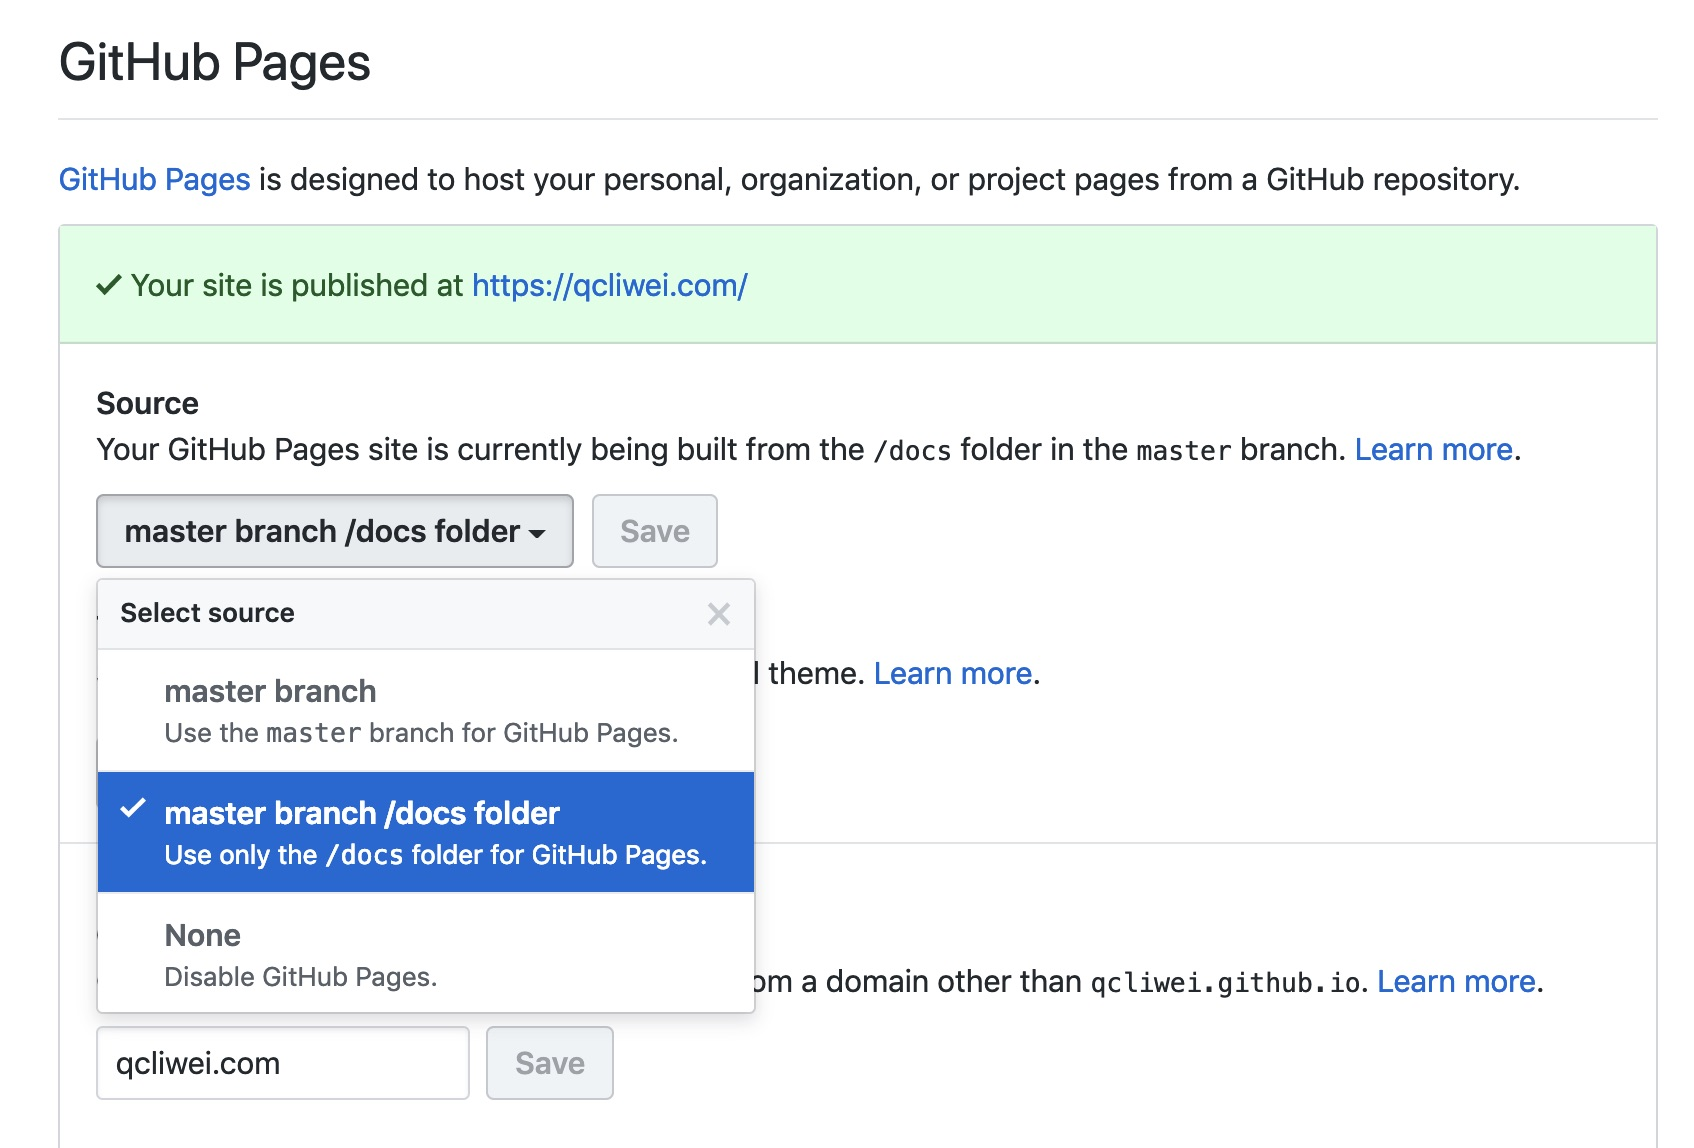 githubpages